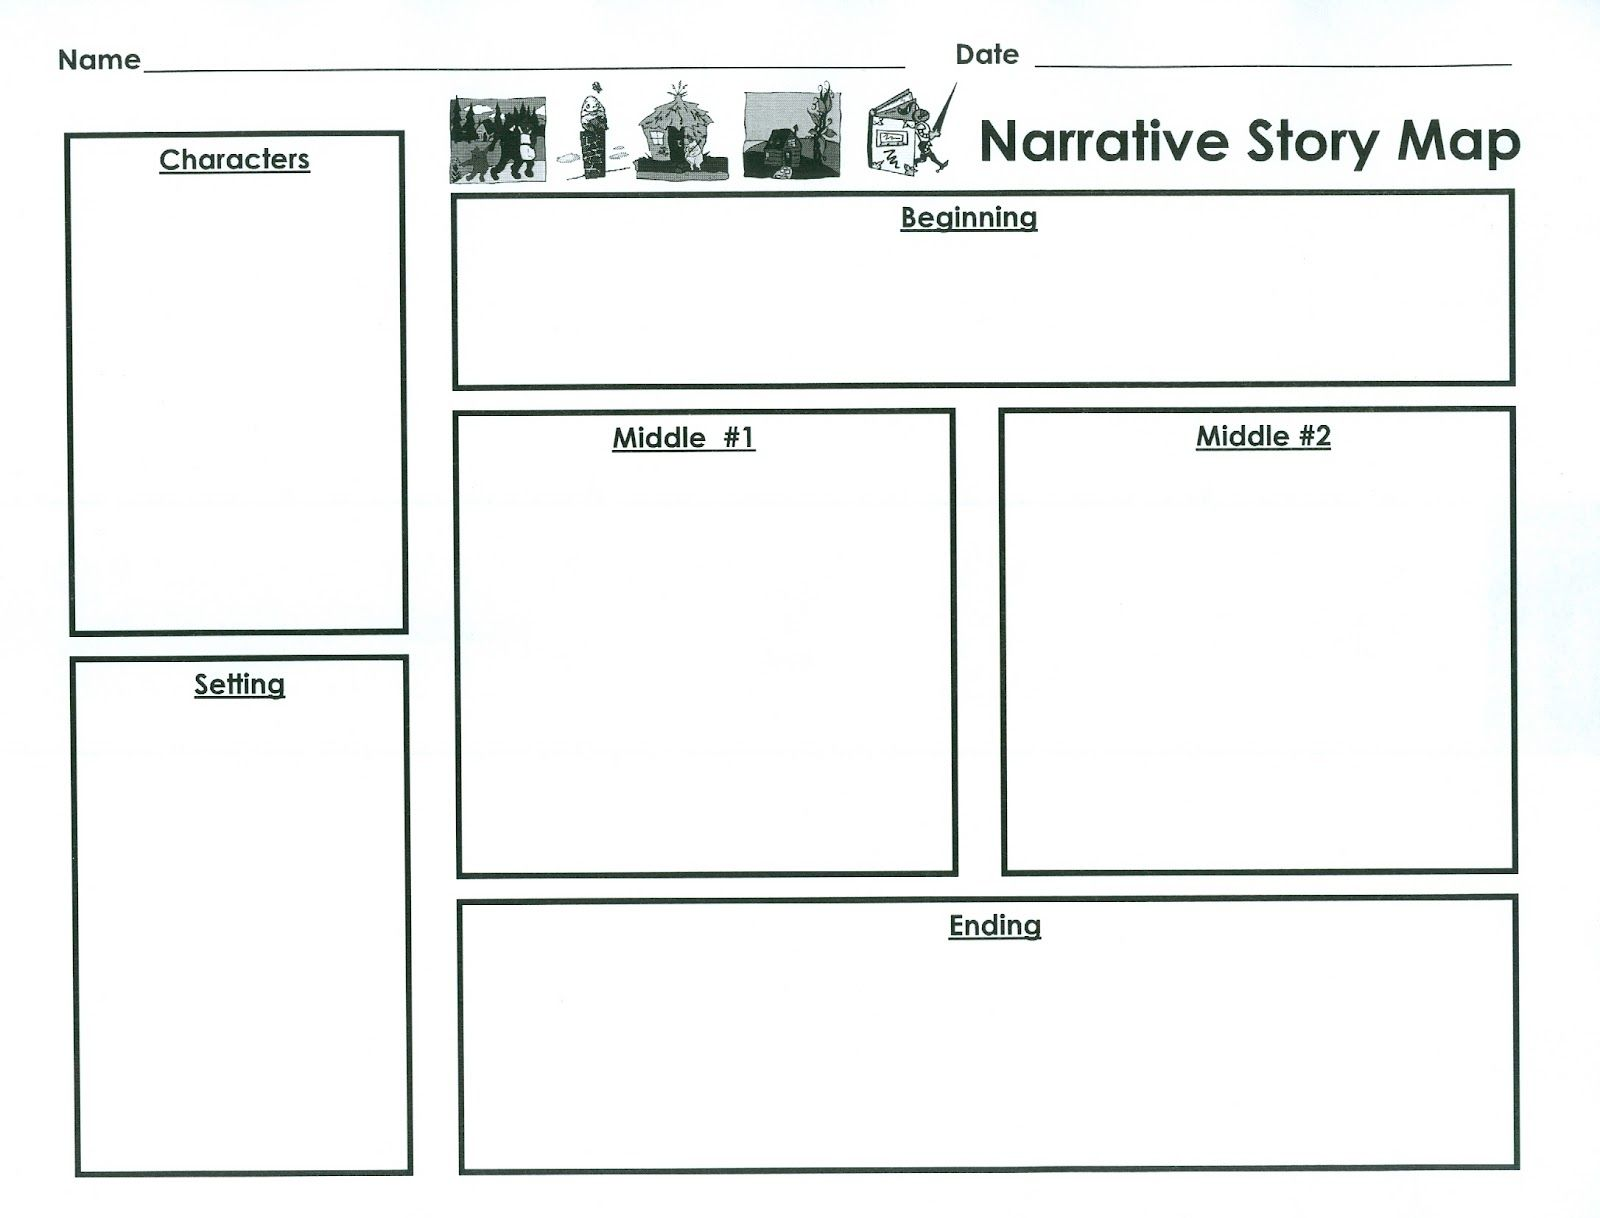 Narrative planner template google search school for Story outline template for kids